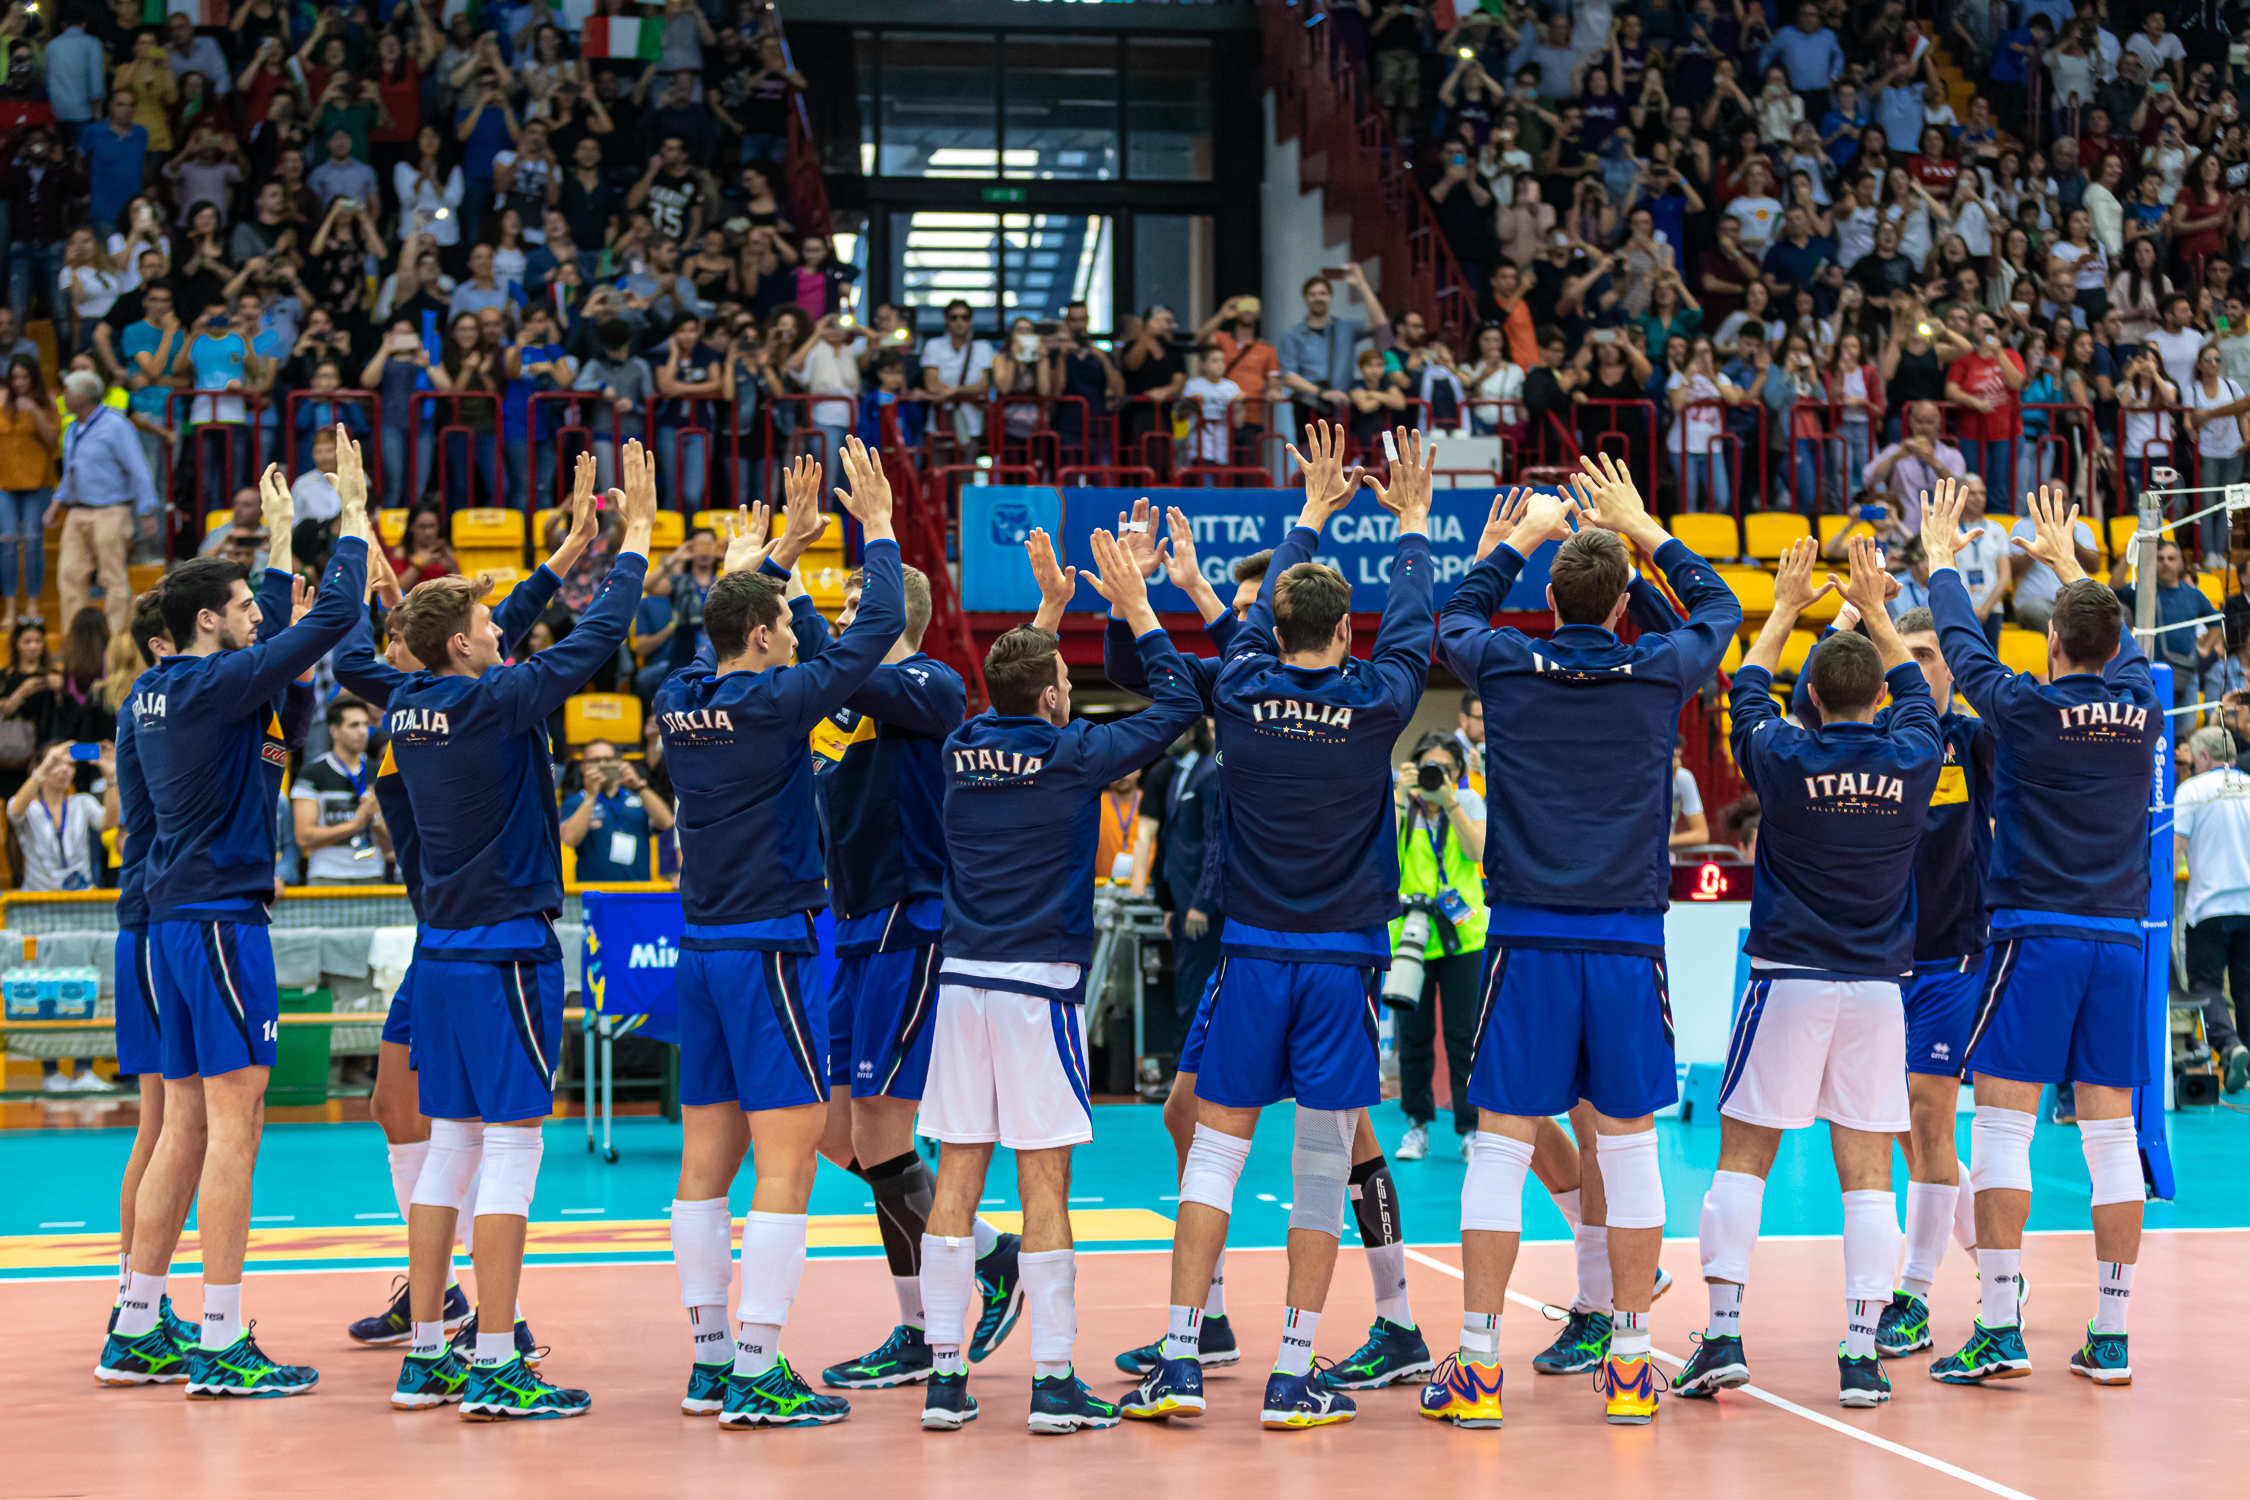 Volleyball ITA vs AUS